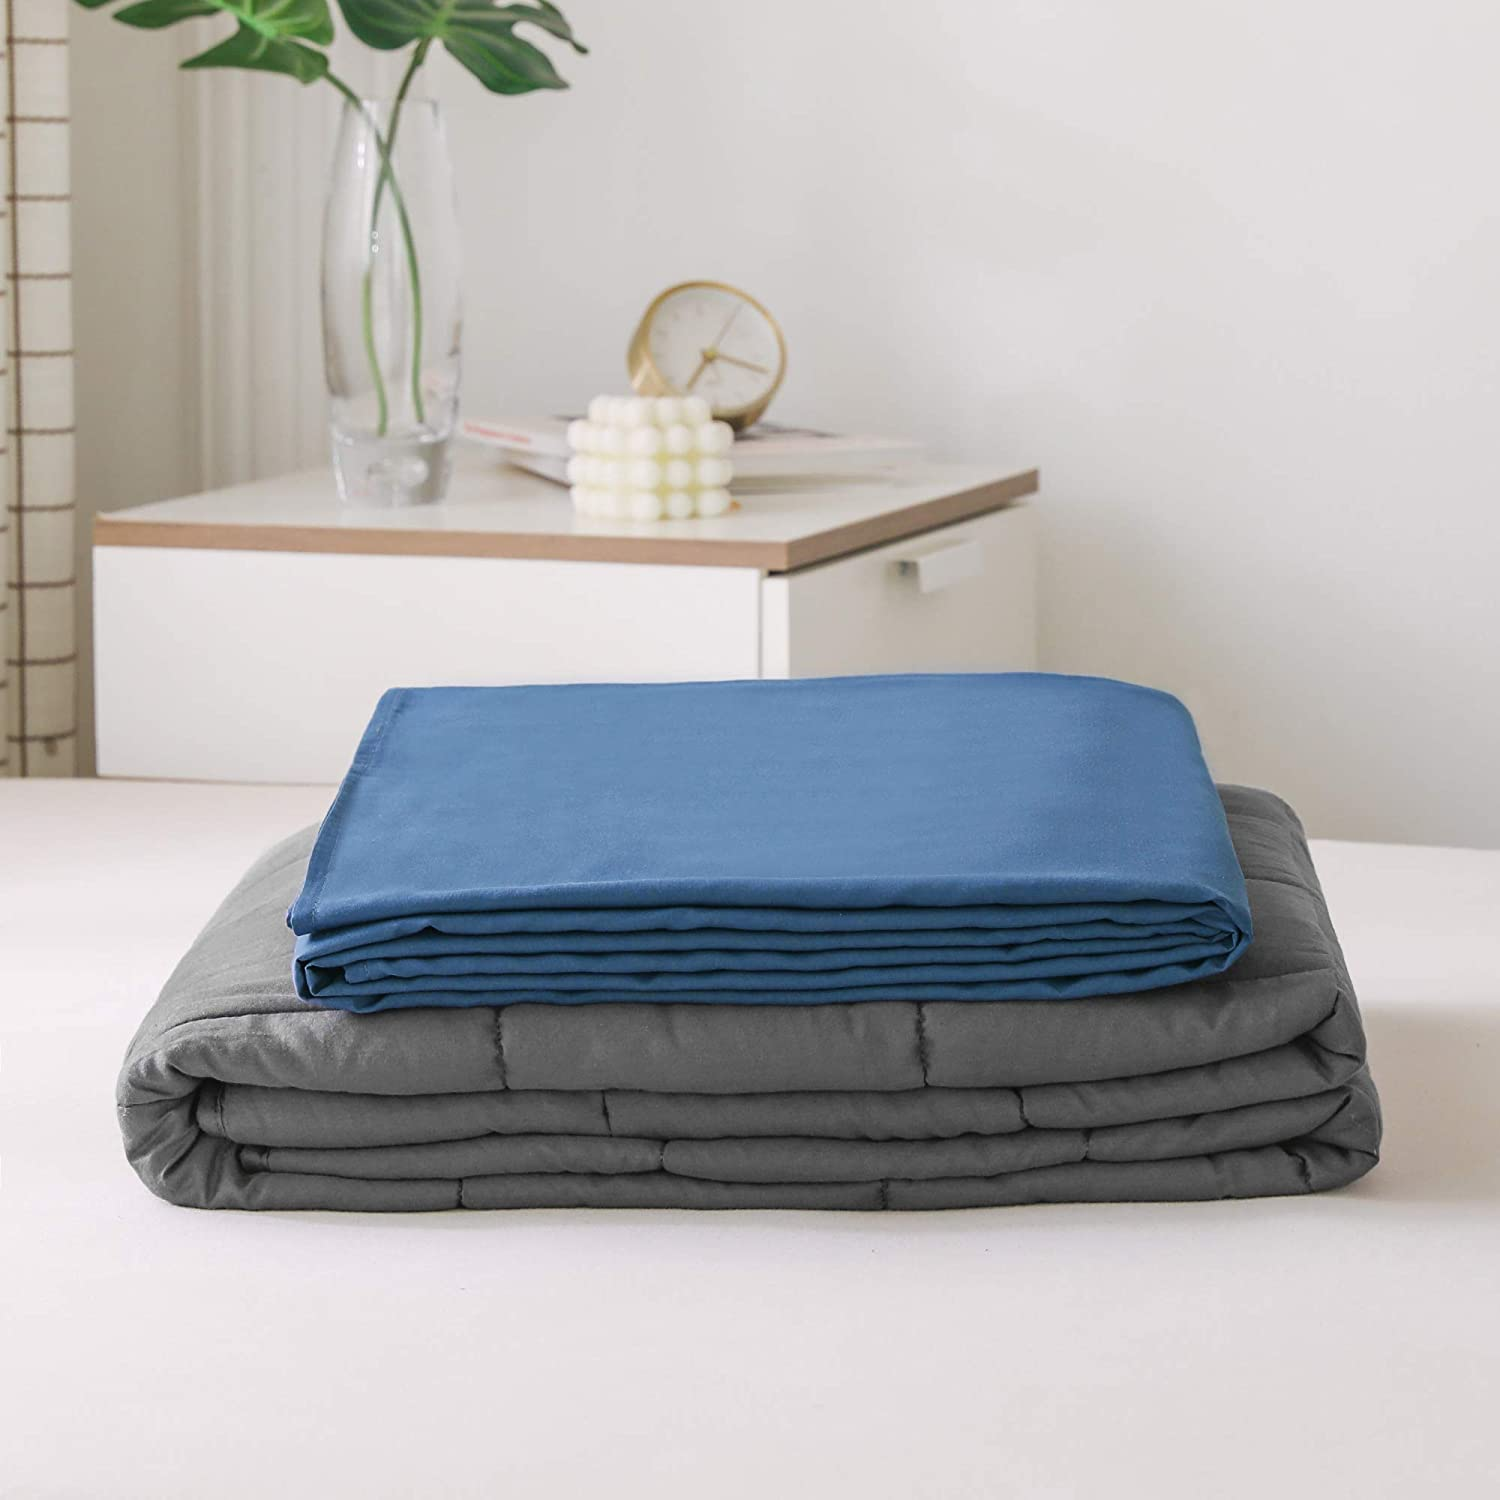 Premium Polyester Microfiber Removable Duvet Cover for Weighted Blanket-Grey PANDAHOME 48x72 Grey Duvet Cover